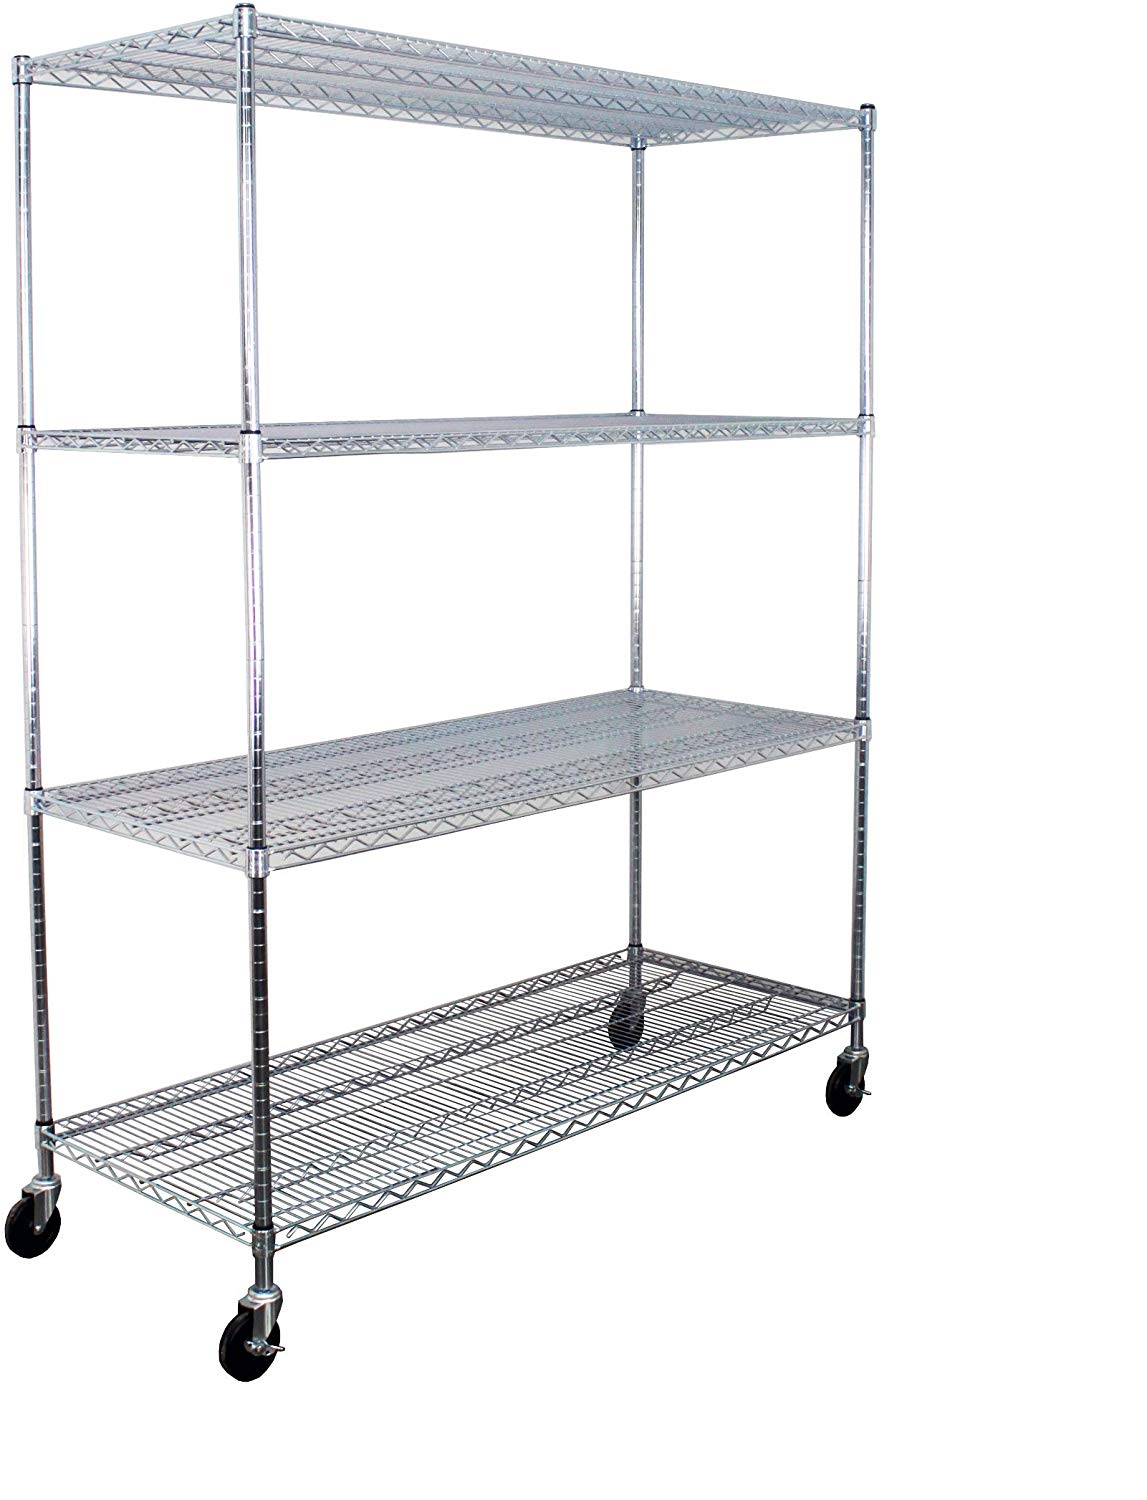 4 Shelf Storage Unit 24x60x72